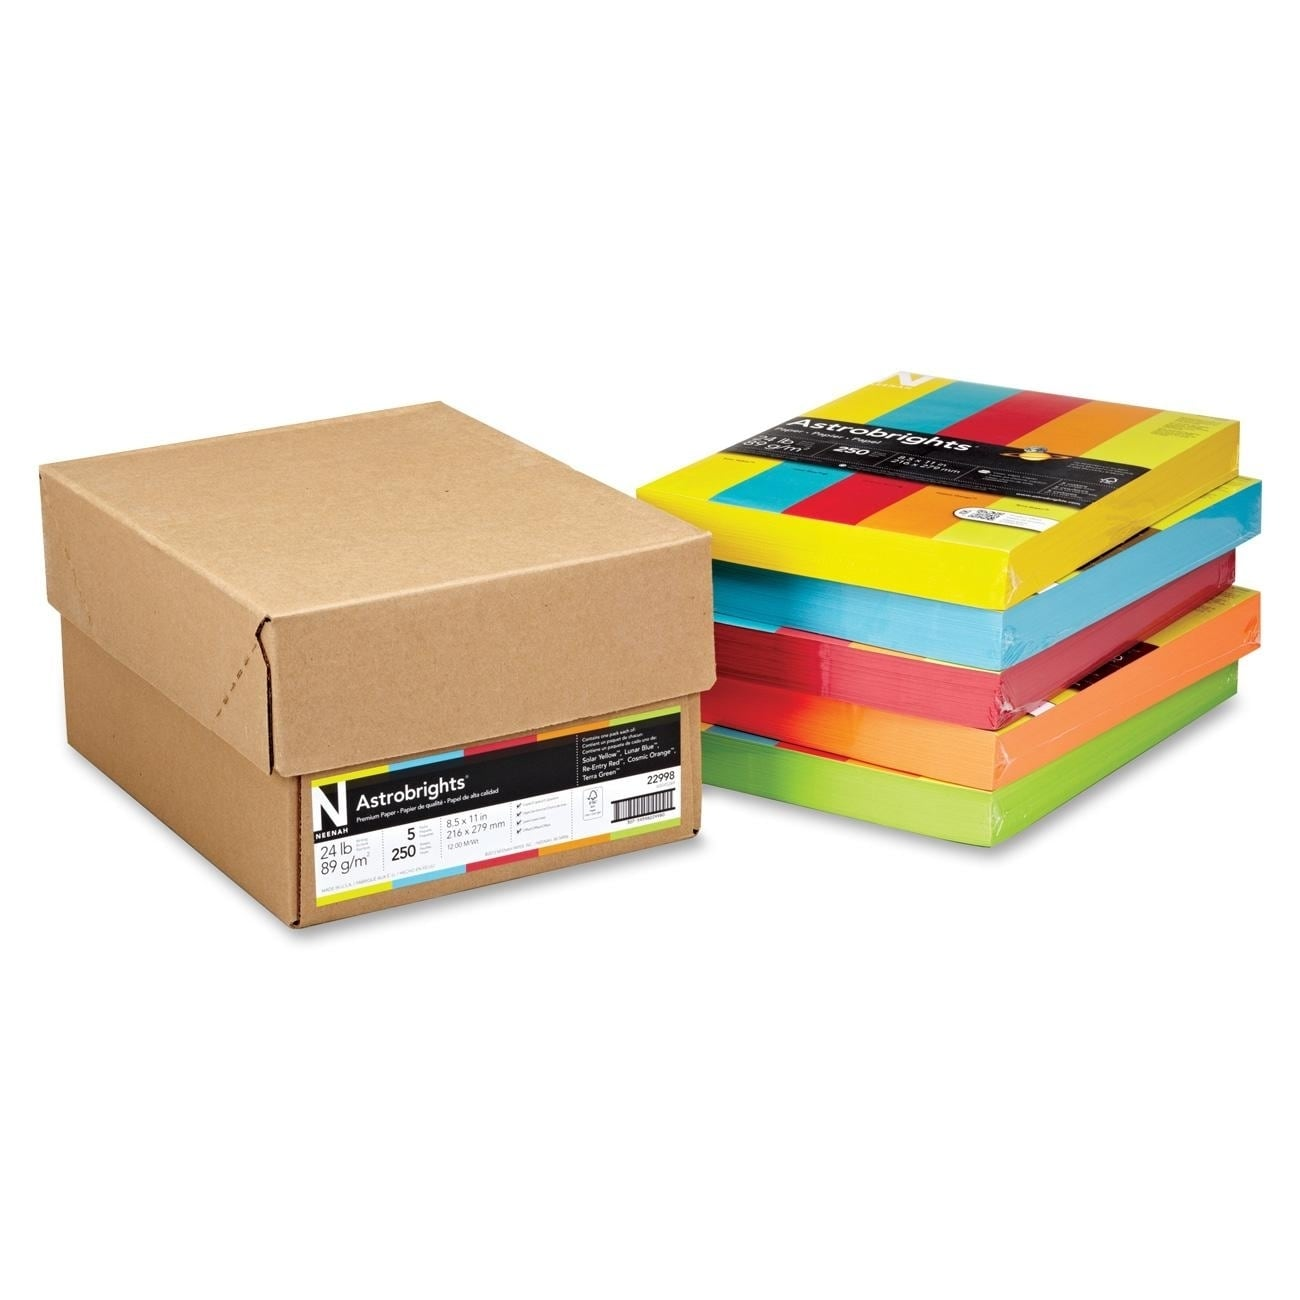 Wausau Papers Astrobrights 24lb. Assorted Colors Paper - ...